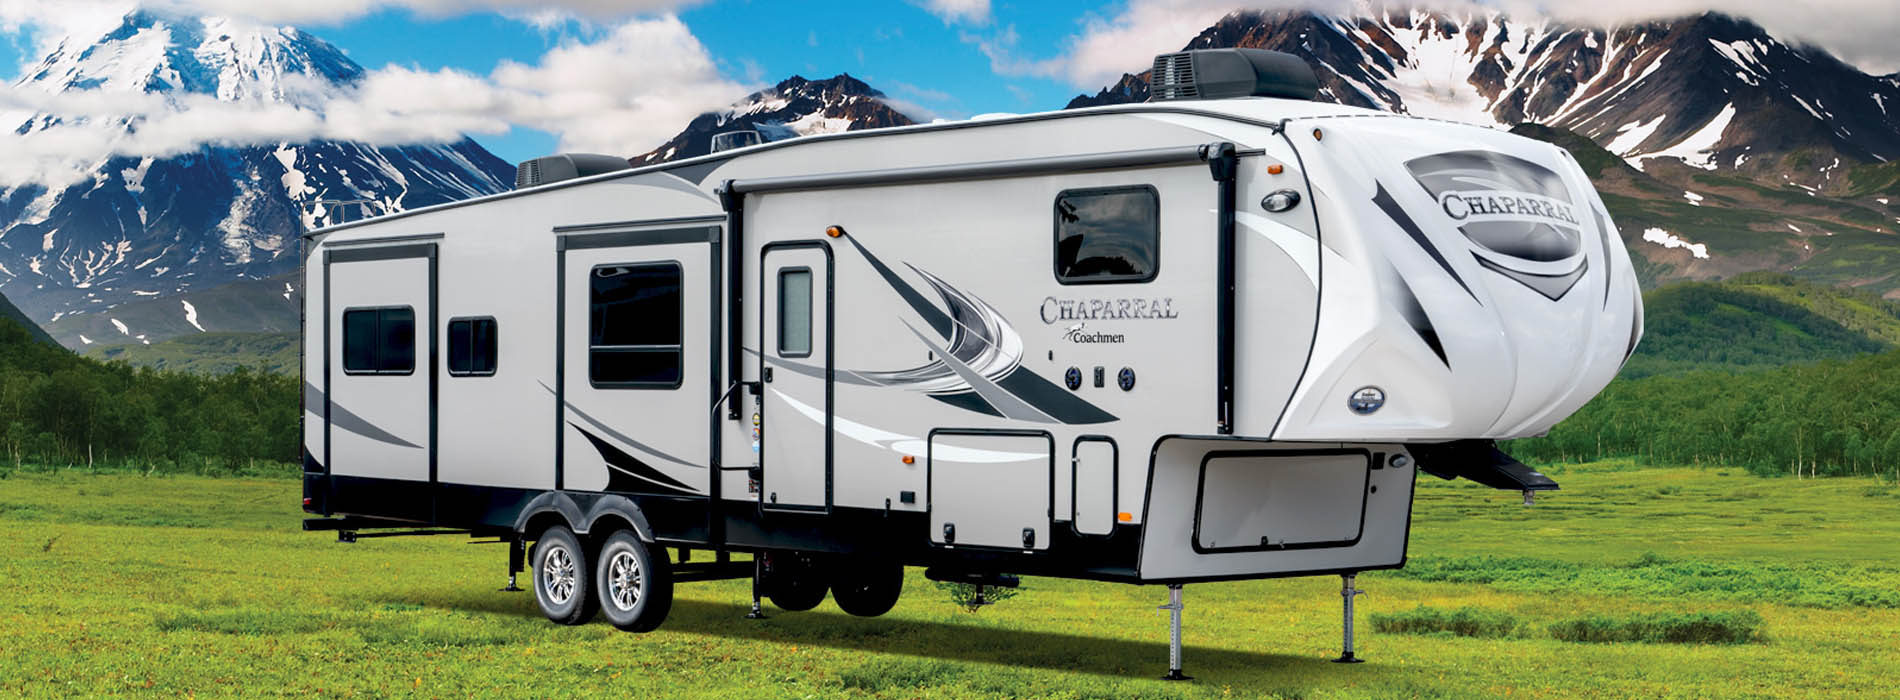 Sherwood Auto & Campers - Hillsboro, OH - Offering New ...